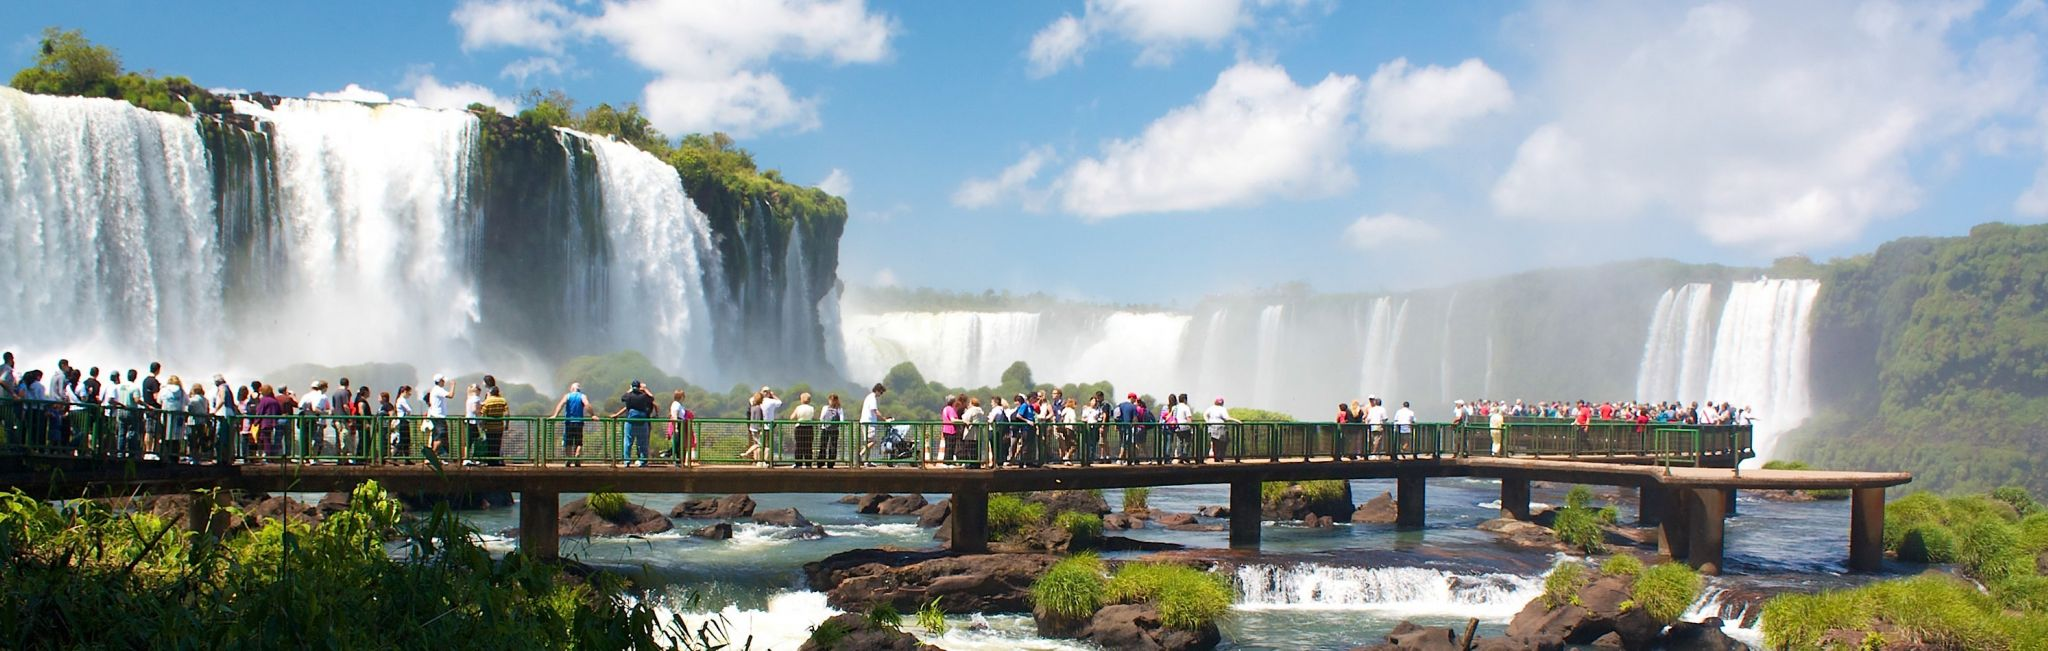 Best Brazil Vacation Packages Tours Amp Vacations 2017 2018 Zicasso